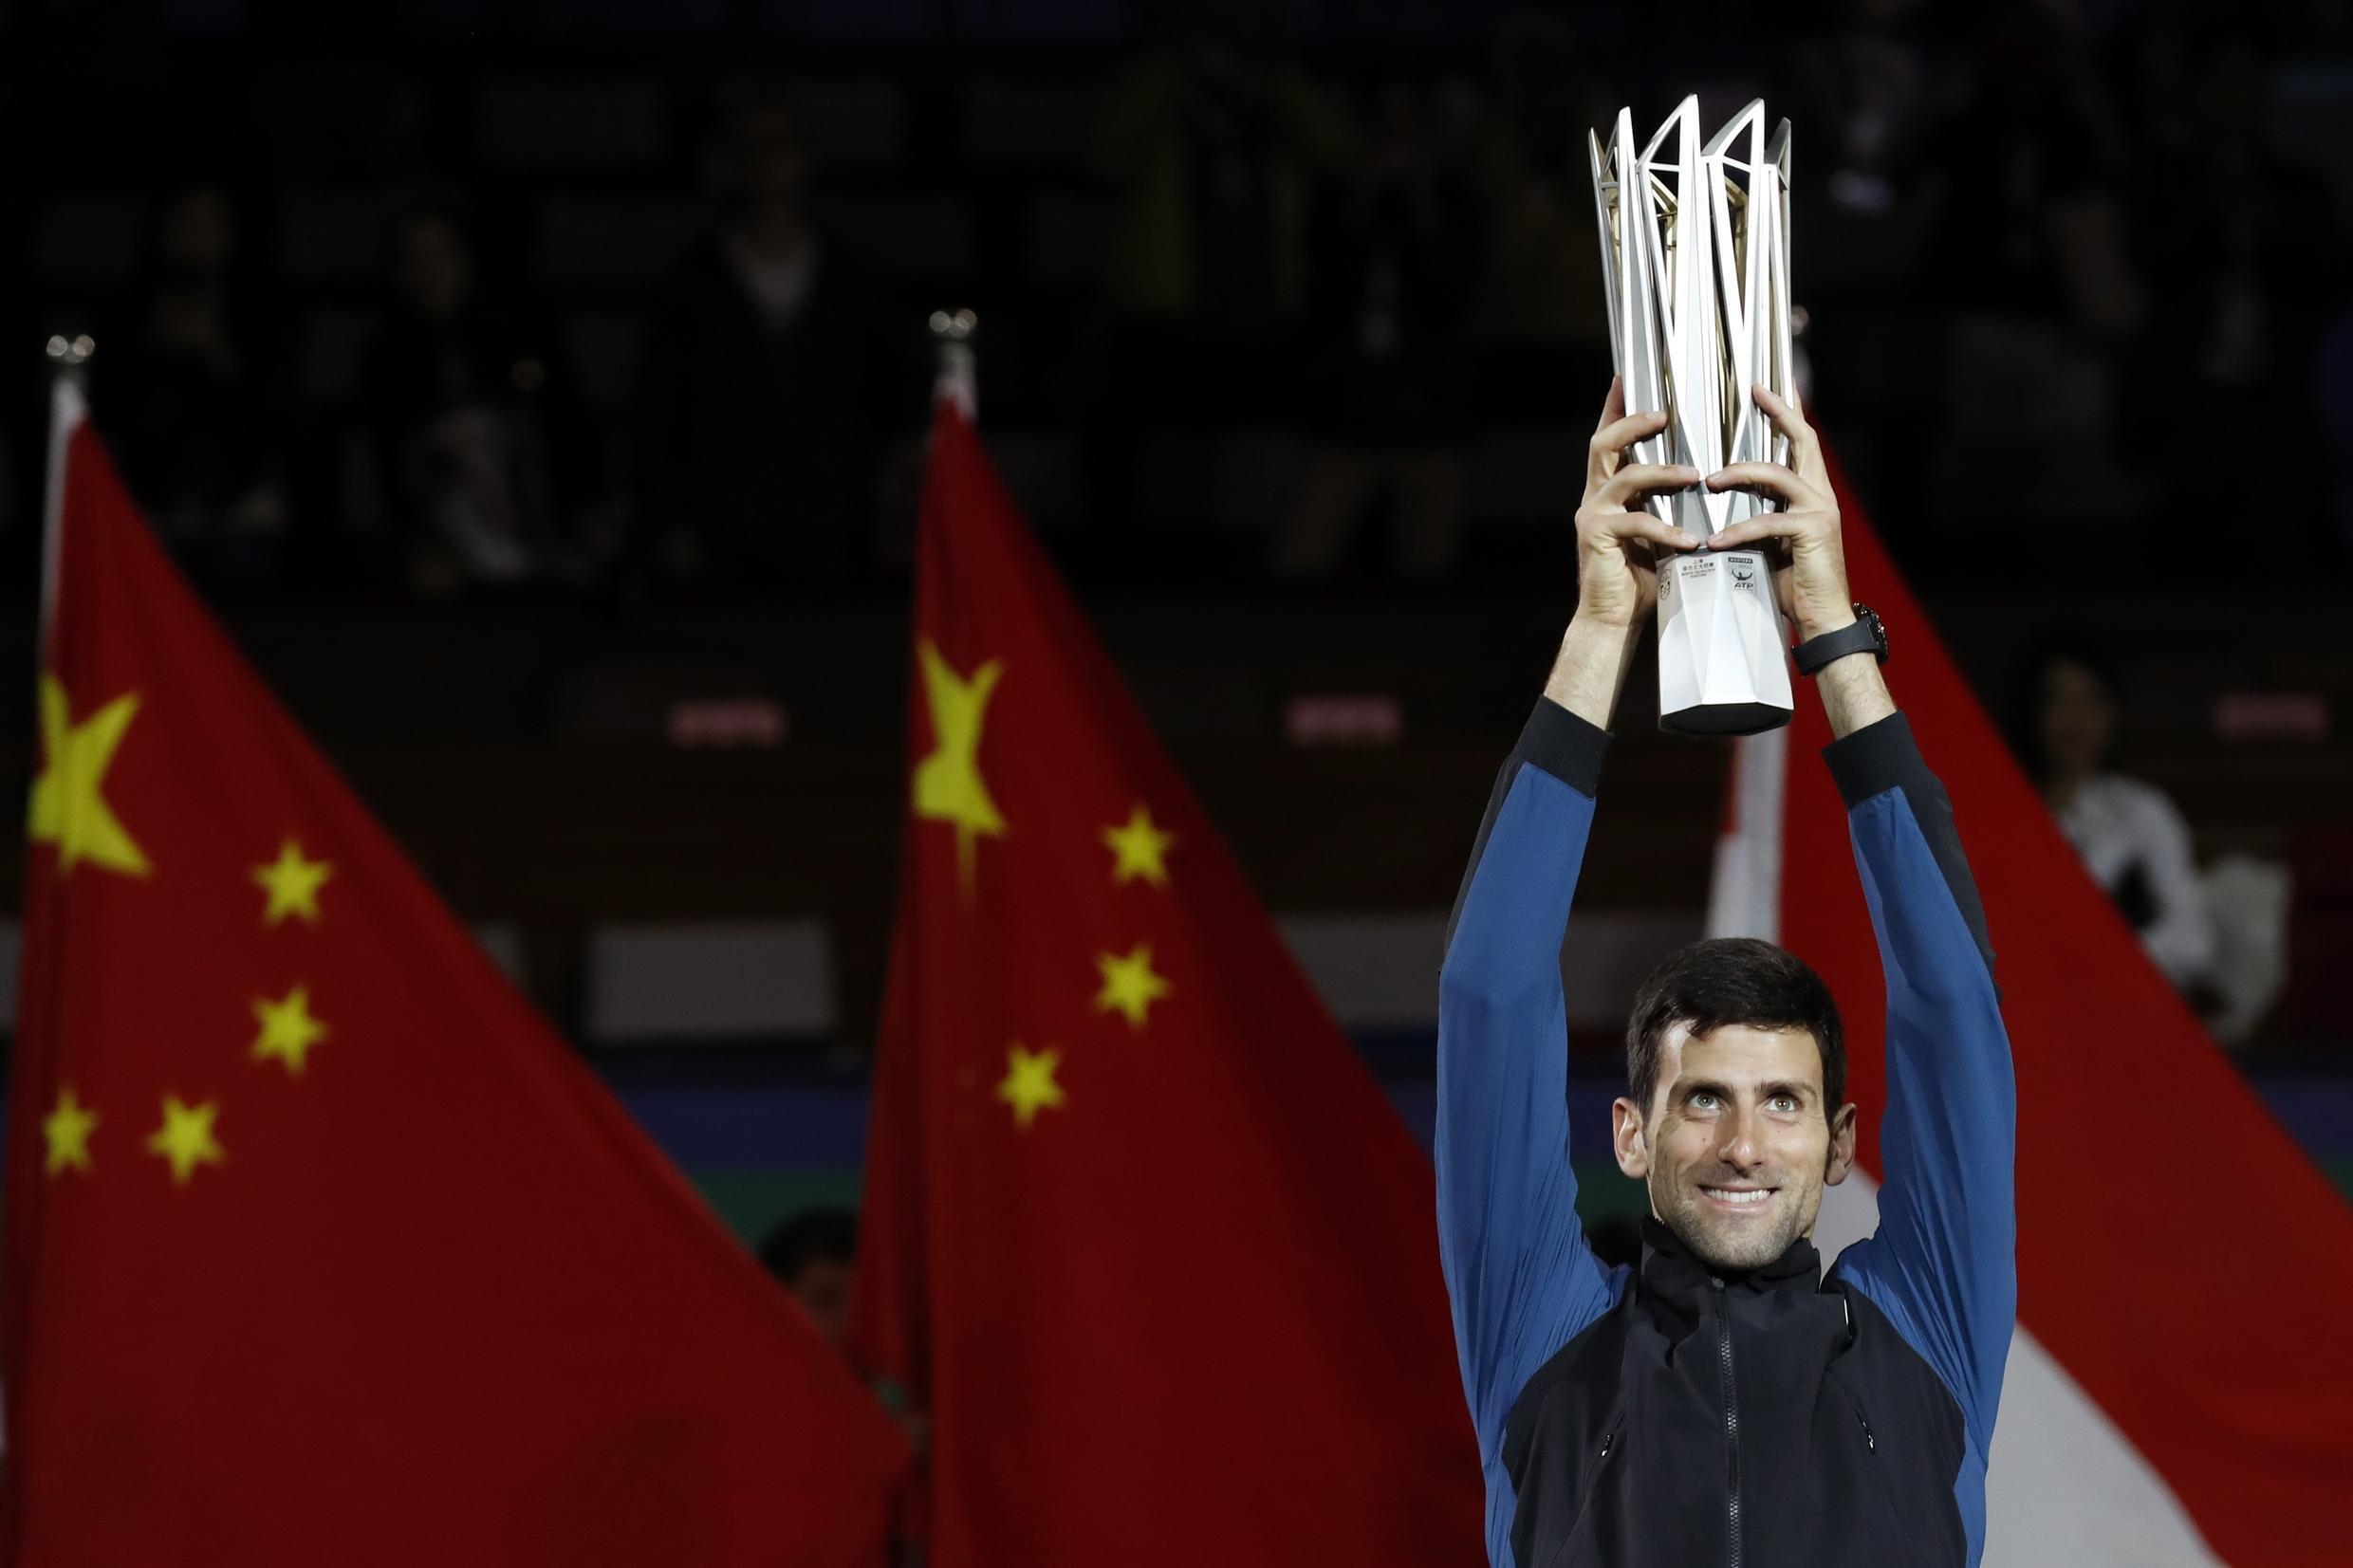 Novak Djokovic won his fourth Shanghai Masters title with a straight sets win over Borna Coric.